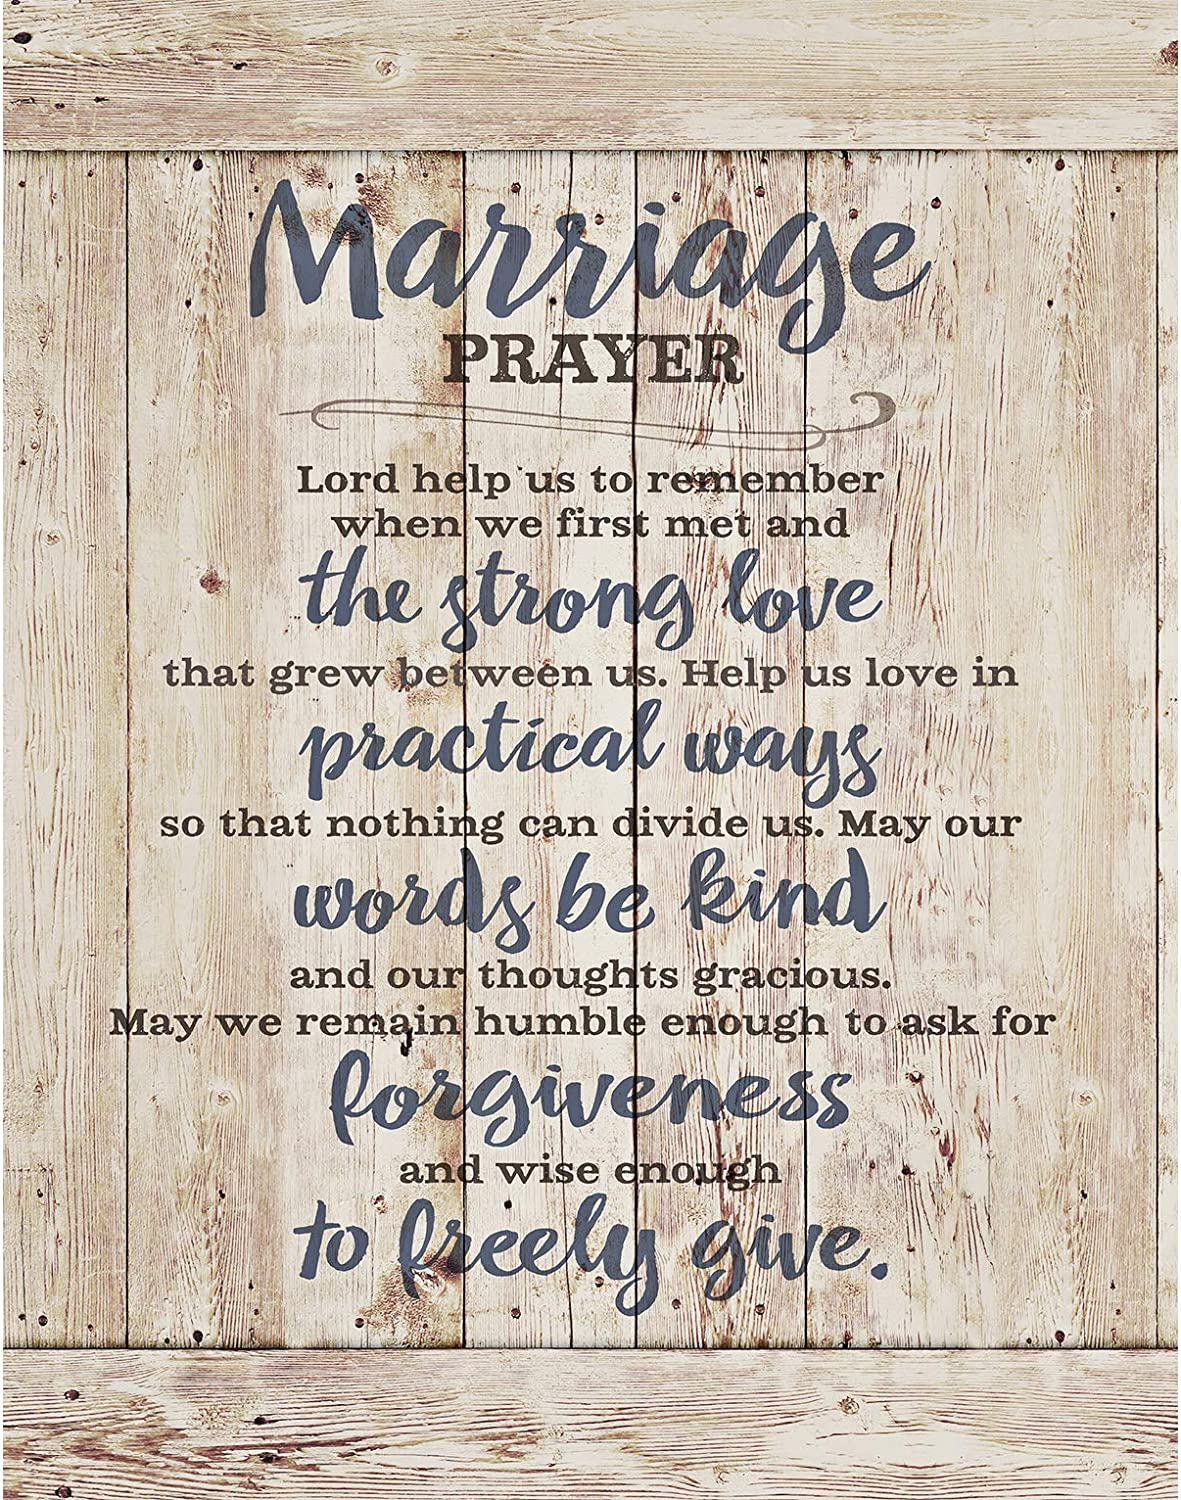 """Marriage Prayer Wood Plaque Inspiring Quote 11.75""""x15"""" - Classy Vertical Frame Wall Hanging Decoration 